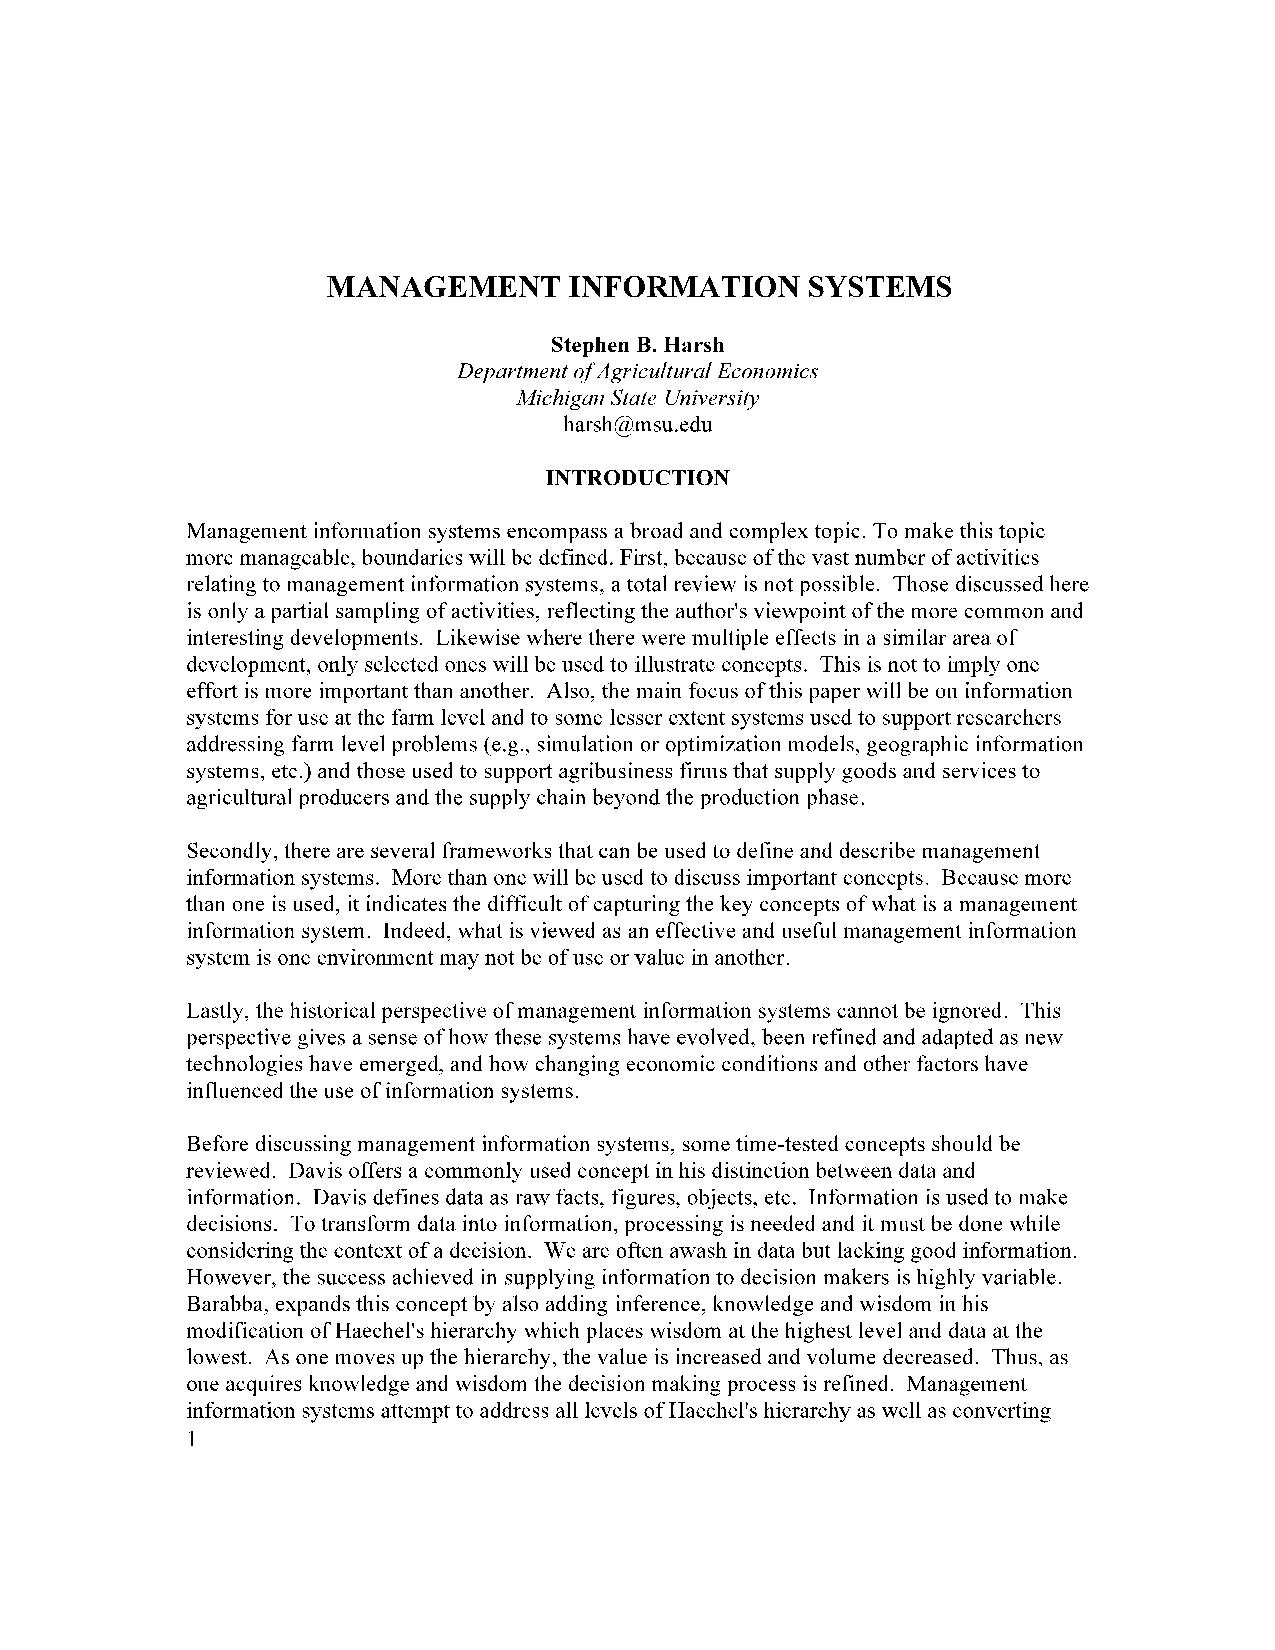 MANAGEMENT INFORMATION SYSTEMS16